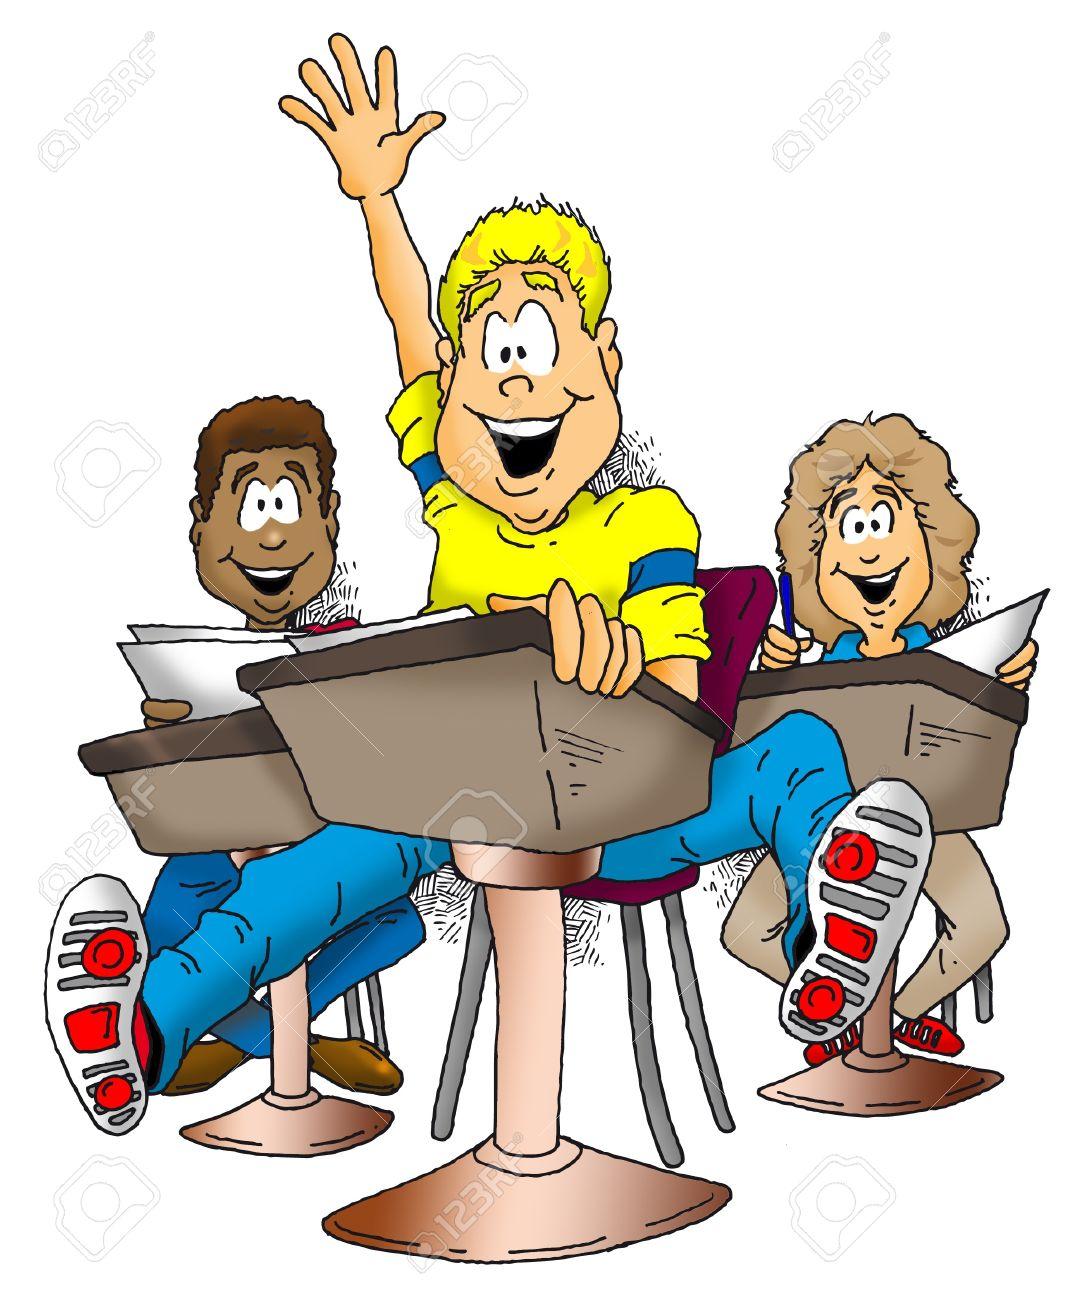 Child Raising Hand In Class Clipart 20 Free Cliparts